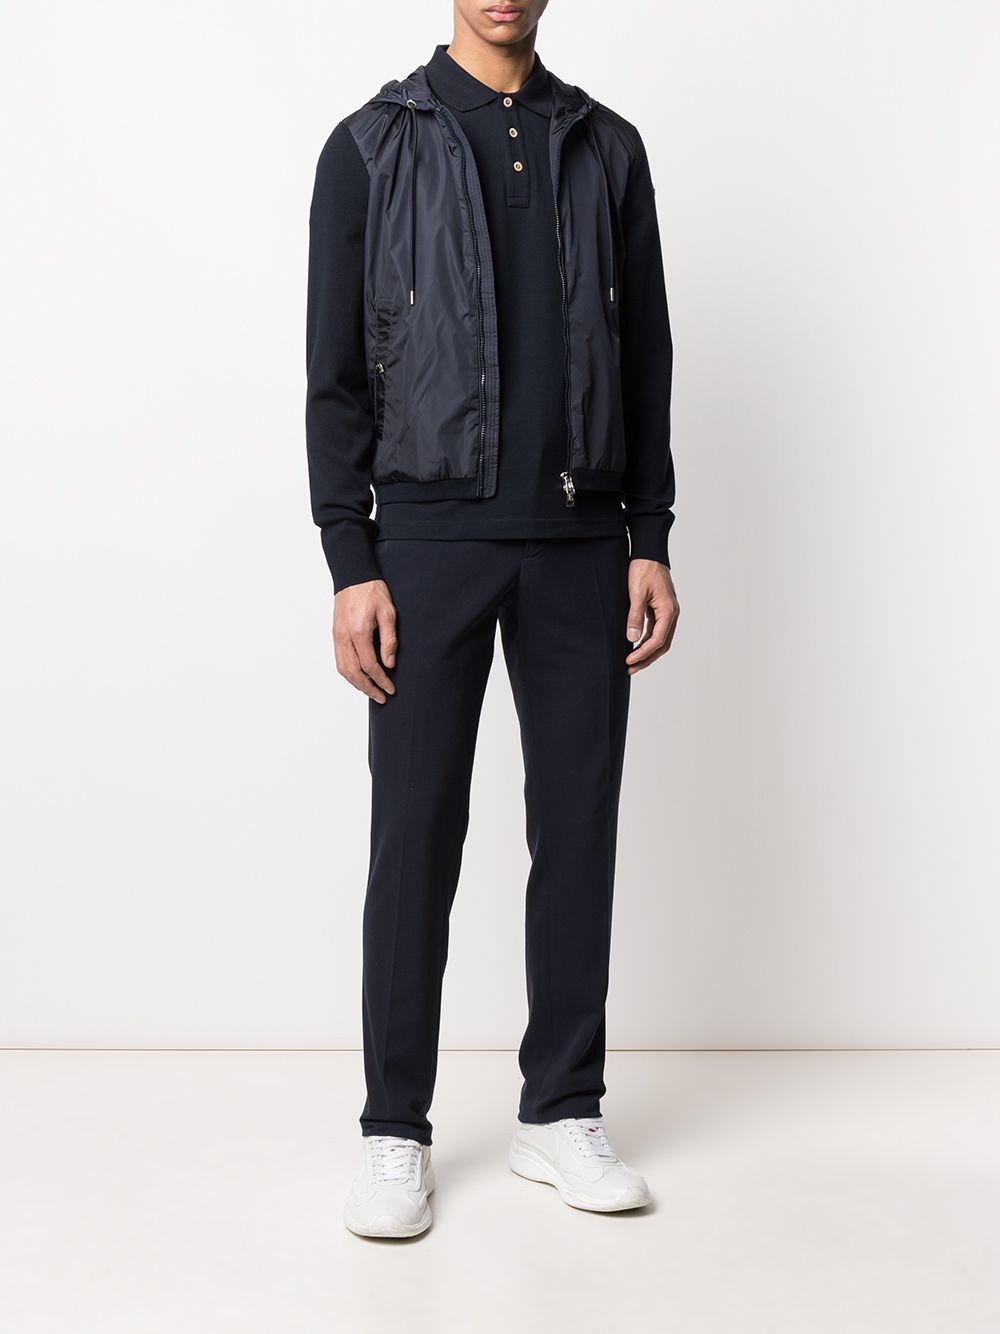 MONCLER hooded jacket navy